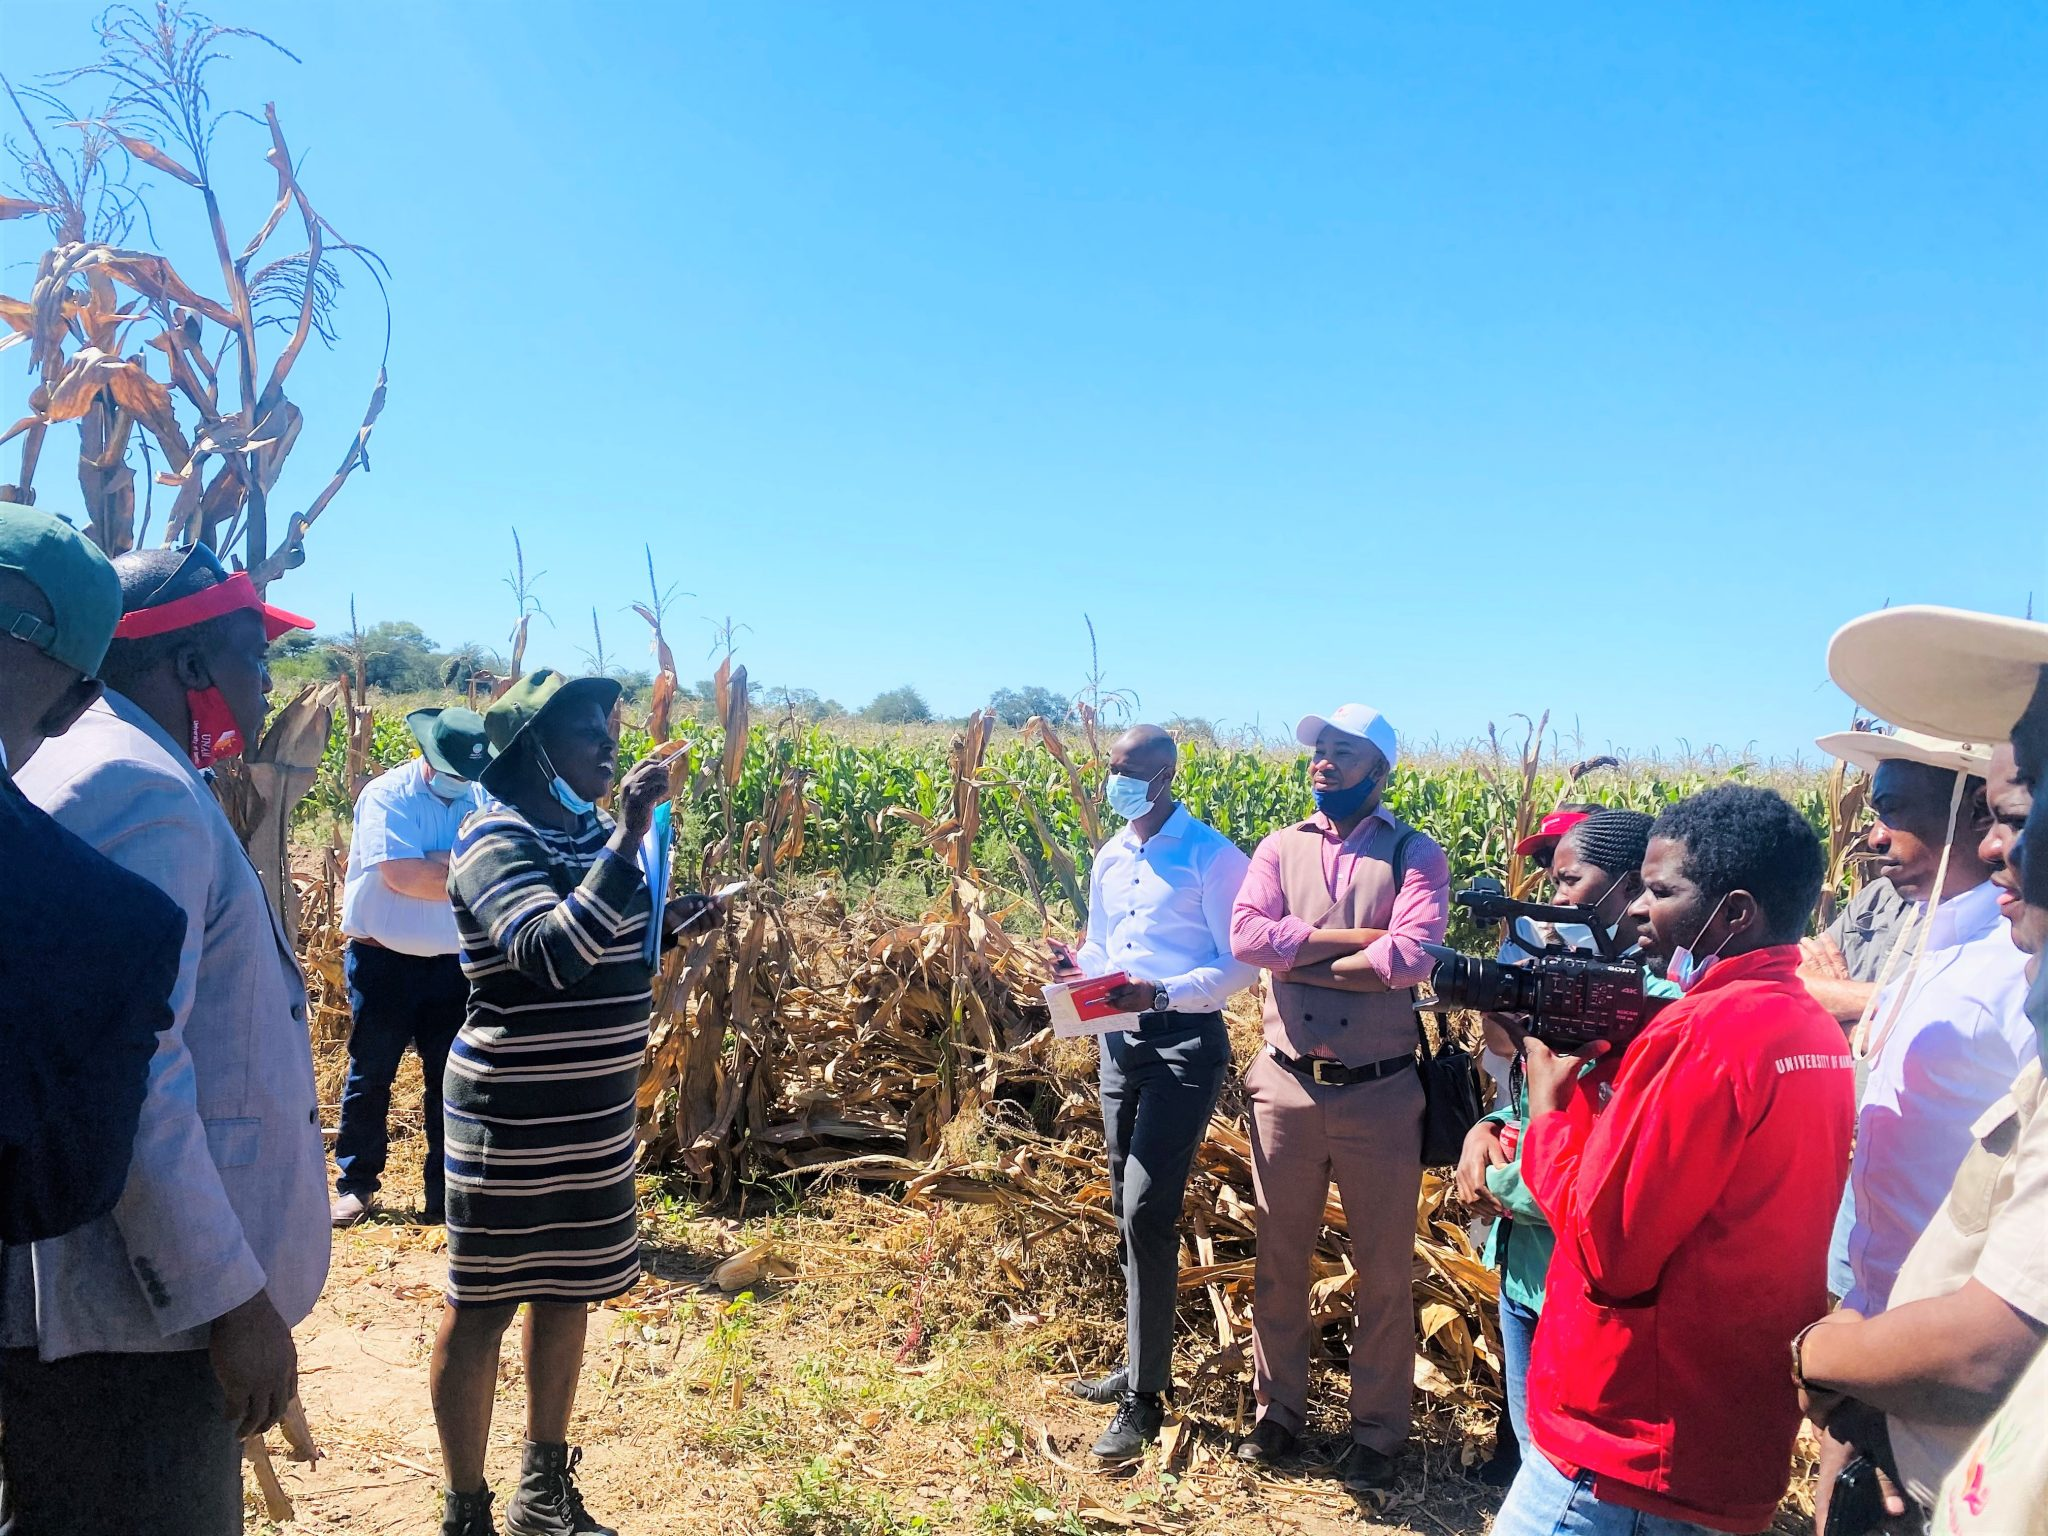 NAB AND UNAM SEED RESEARCH PROJECT TO YIELD PROMISING OUTCOMES